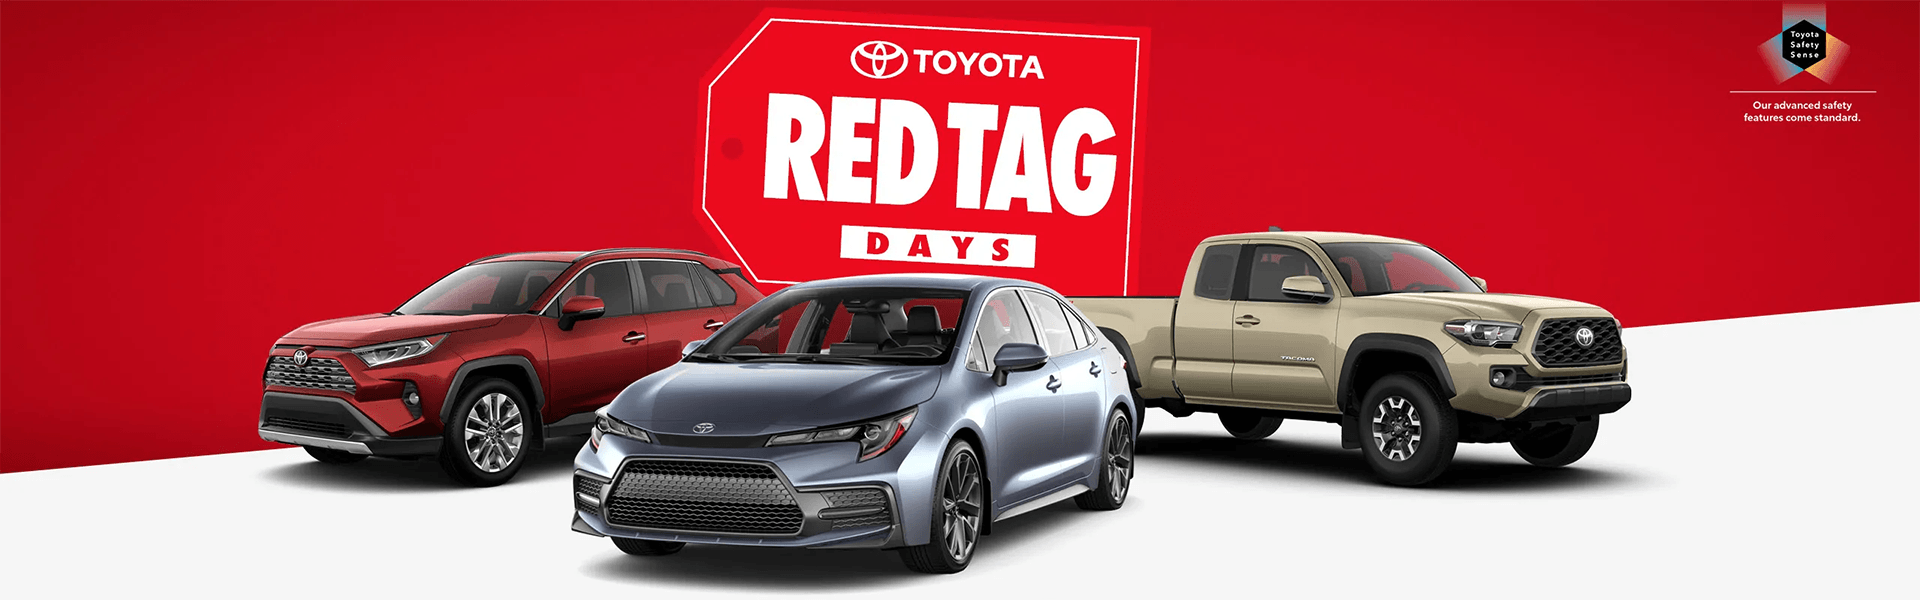 Red tag day at Ken Shaw Toyota in Toronto offers, promotions and sale